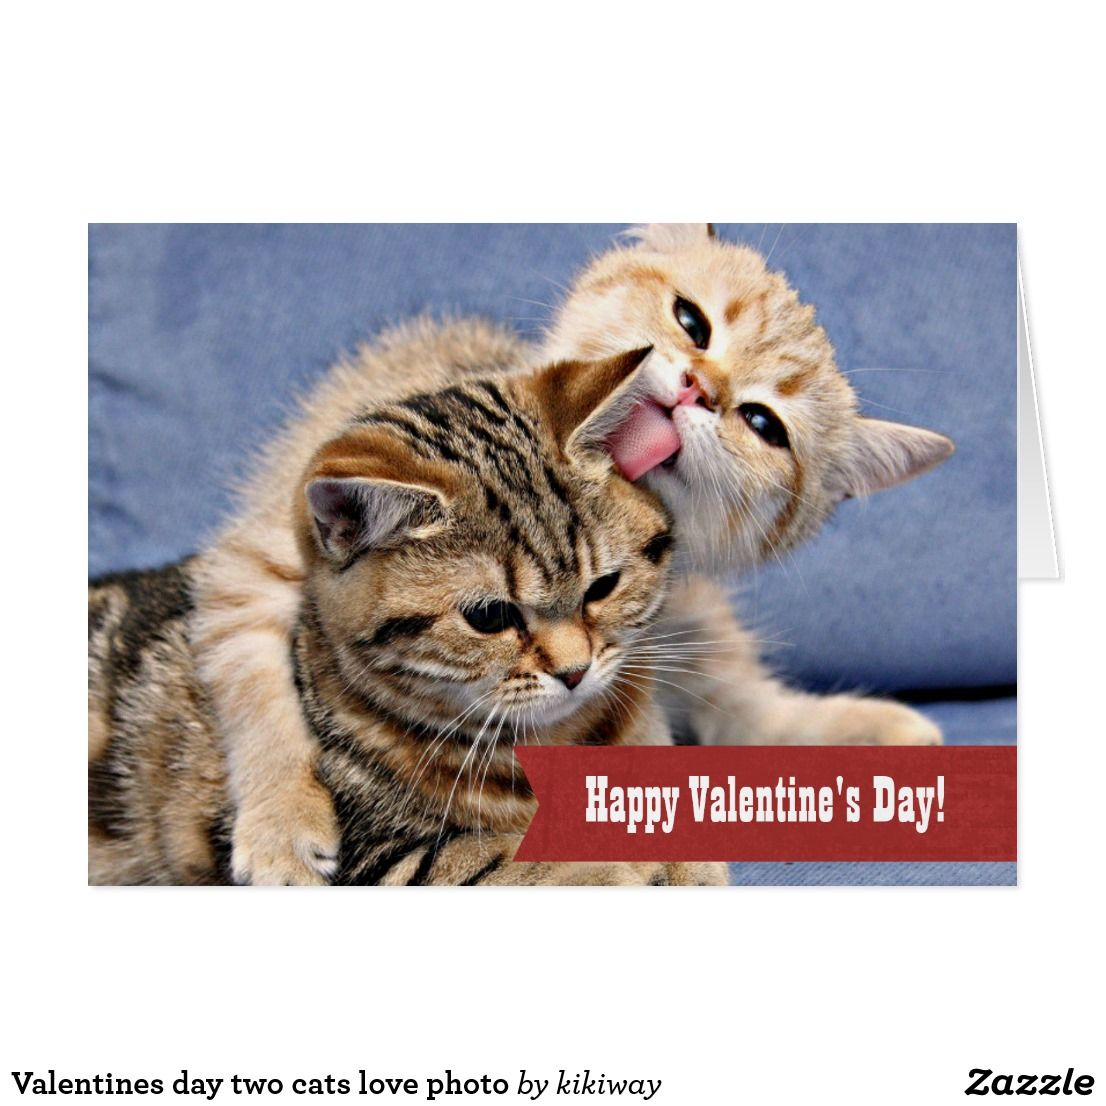 Valentines Day Two Cats Love Photo Holiday Card Zazzle Com Kitten Wallpaper Kittens Cutest Cats And Kittens